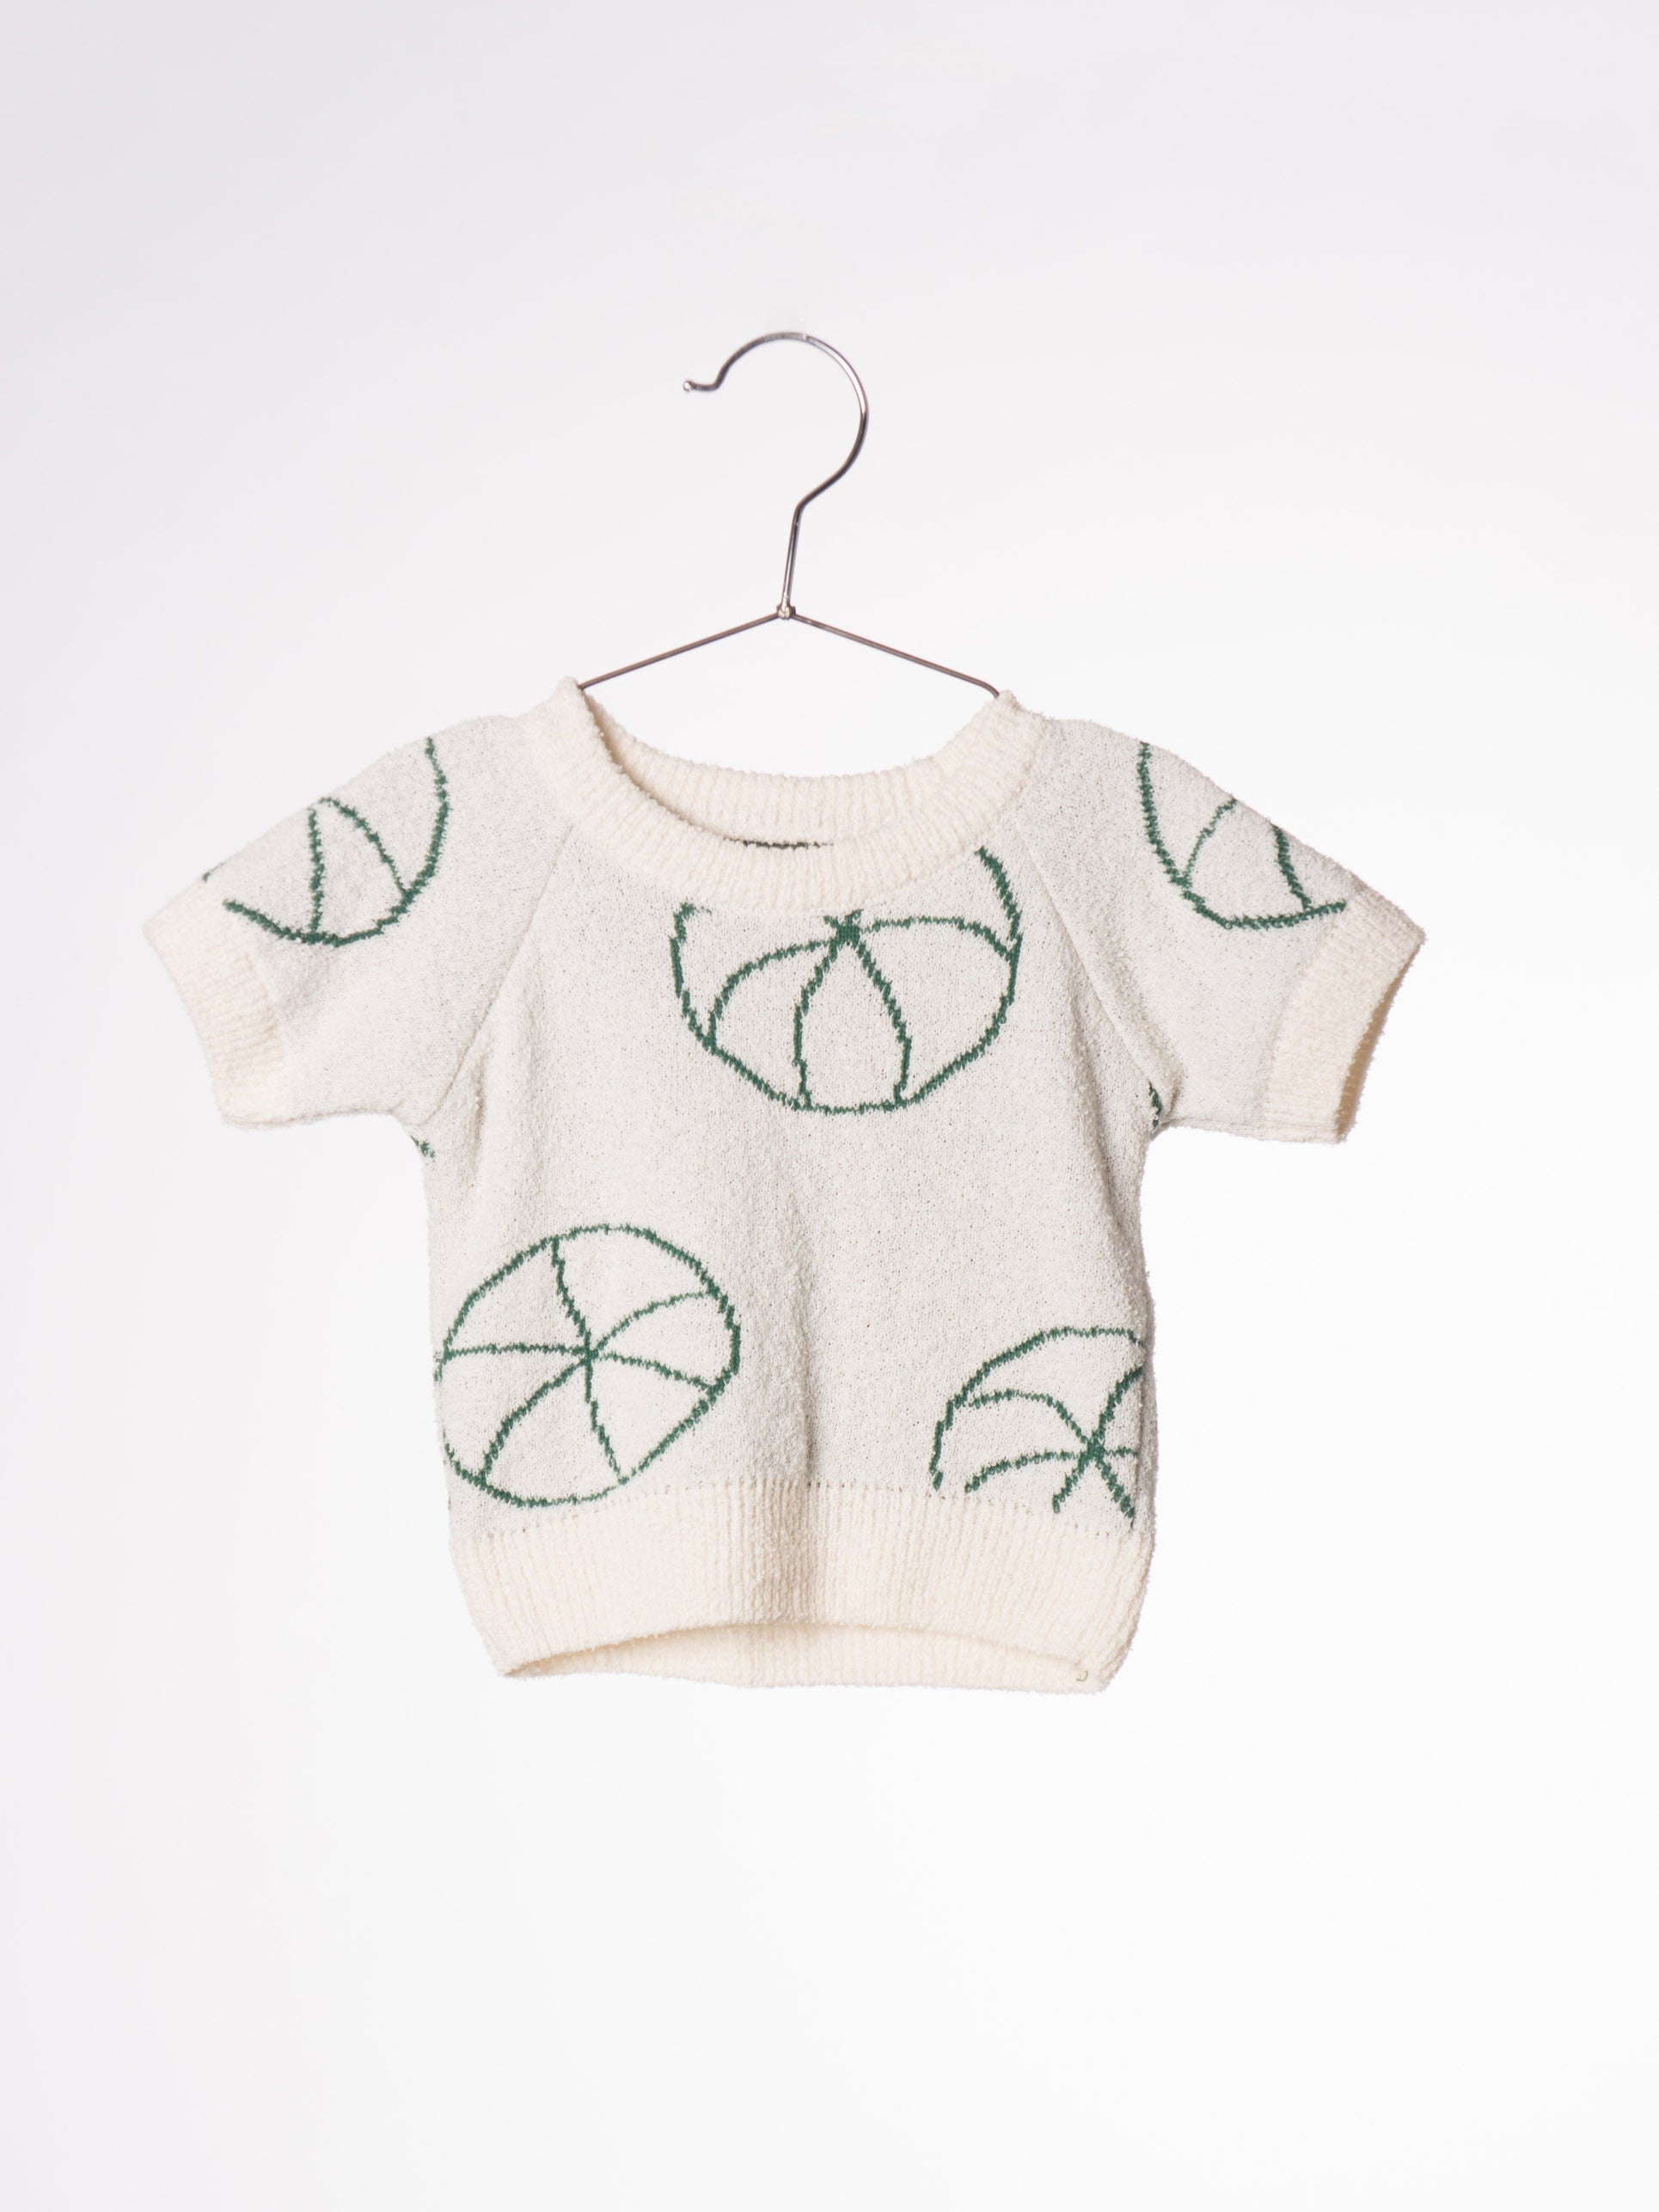 Bobo Choses Basketball Baby Knit Jumper - Ladida